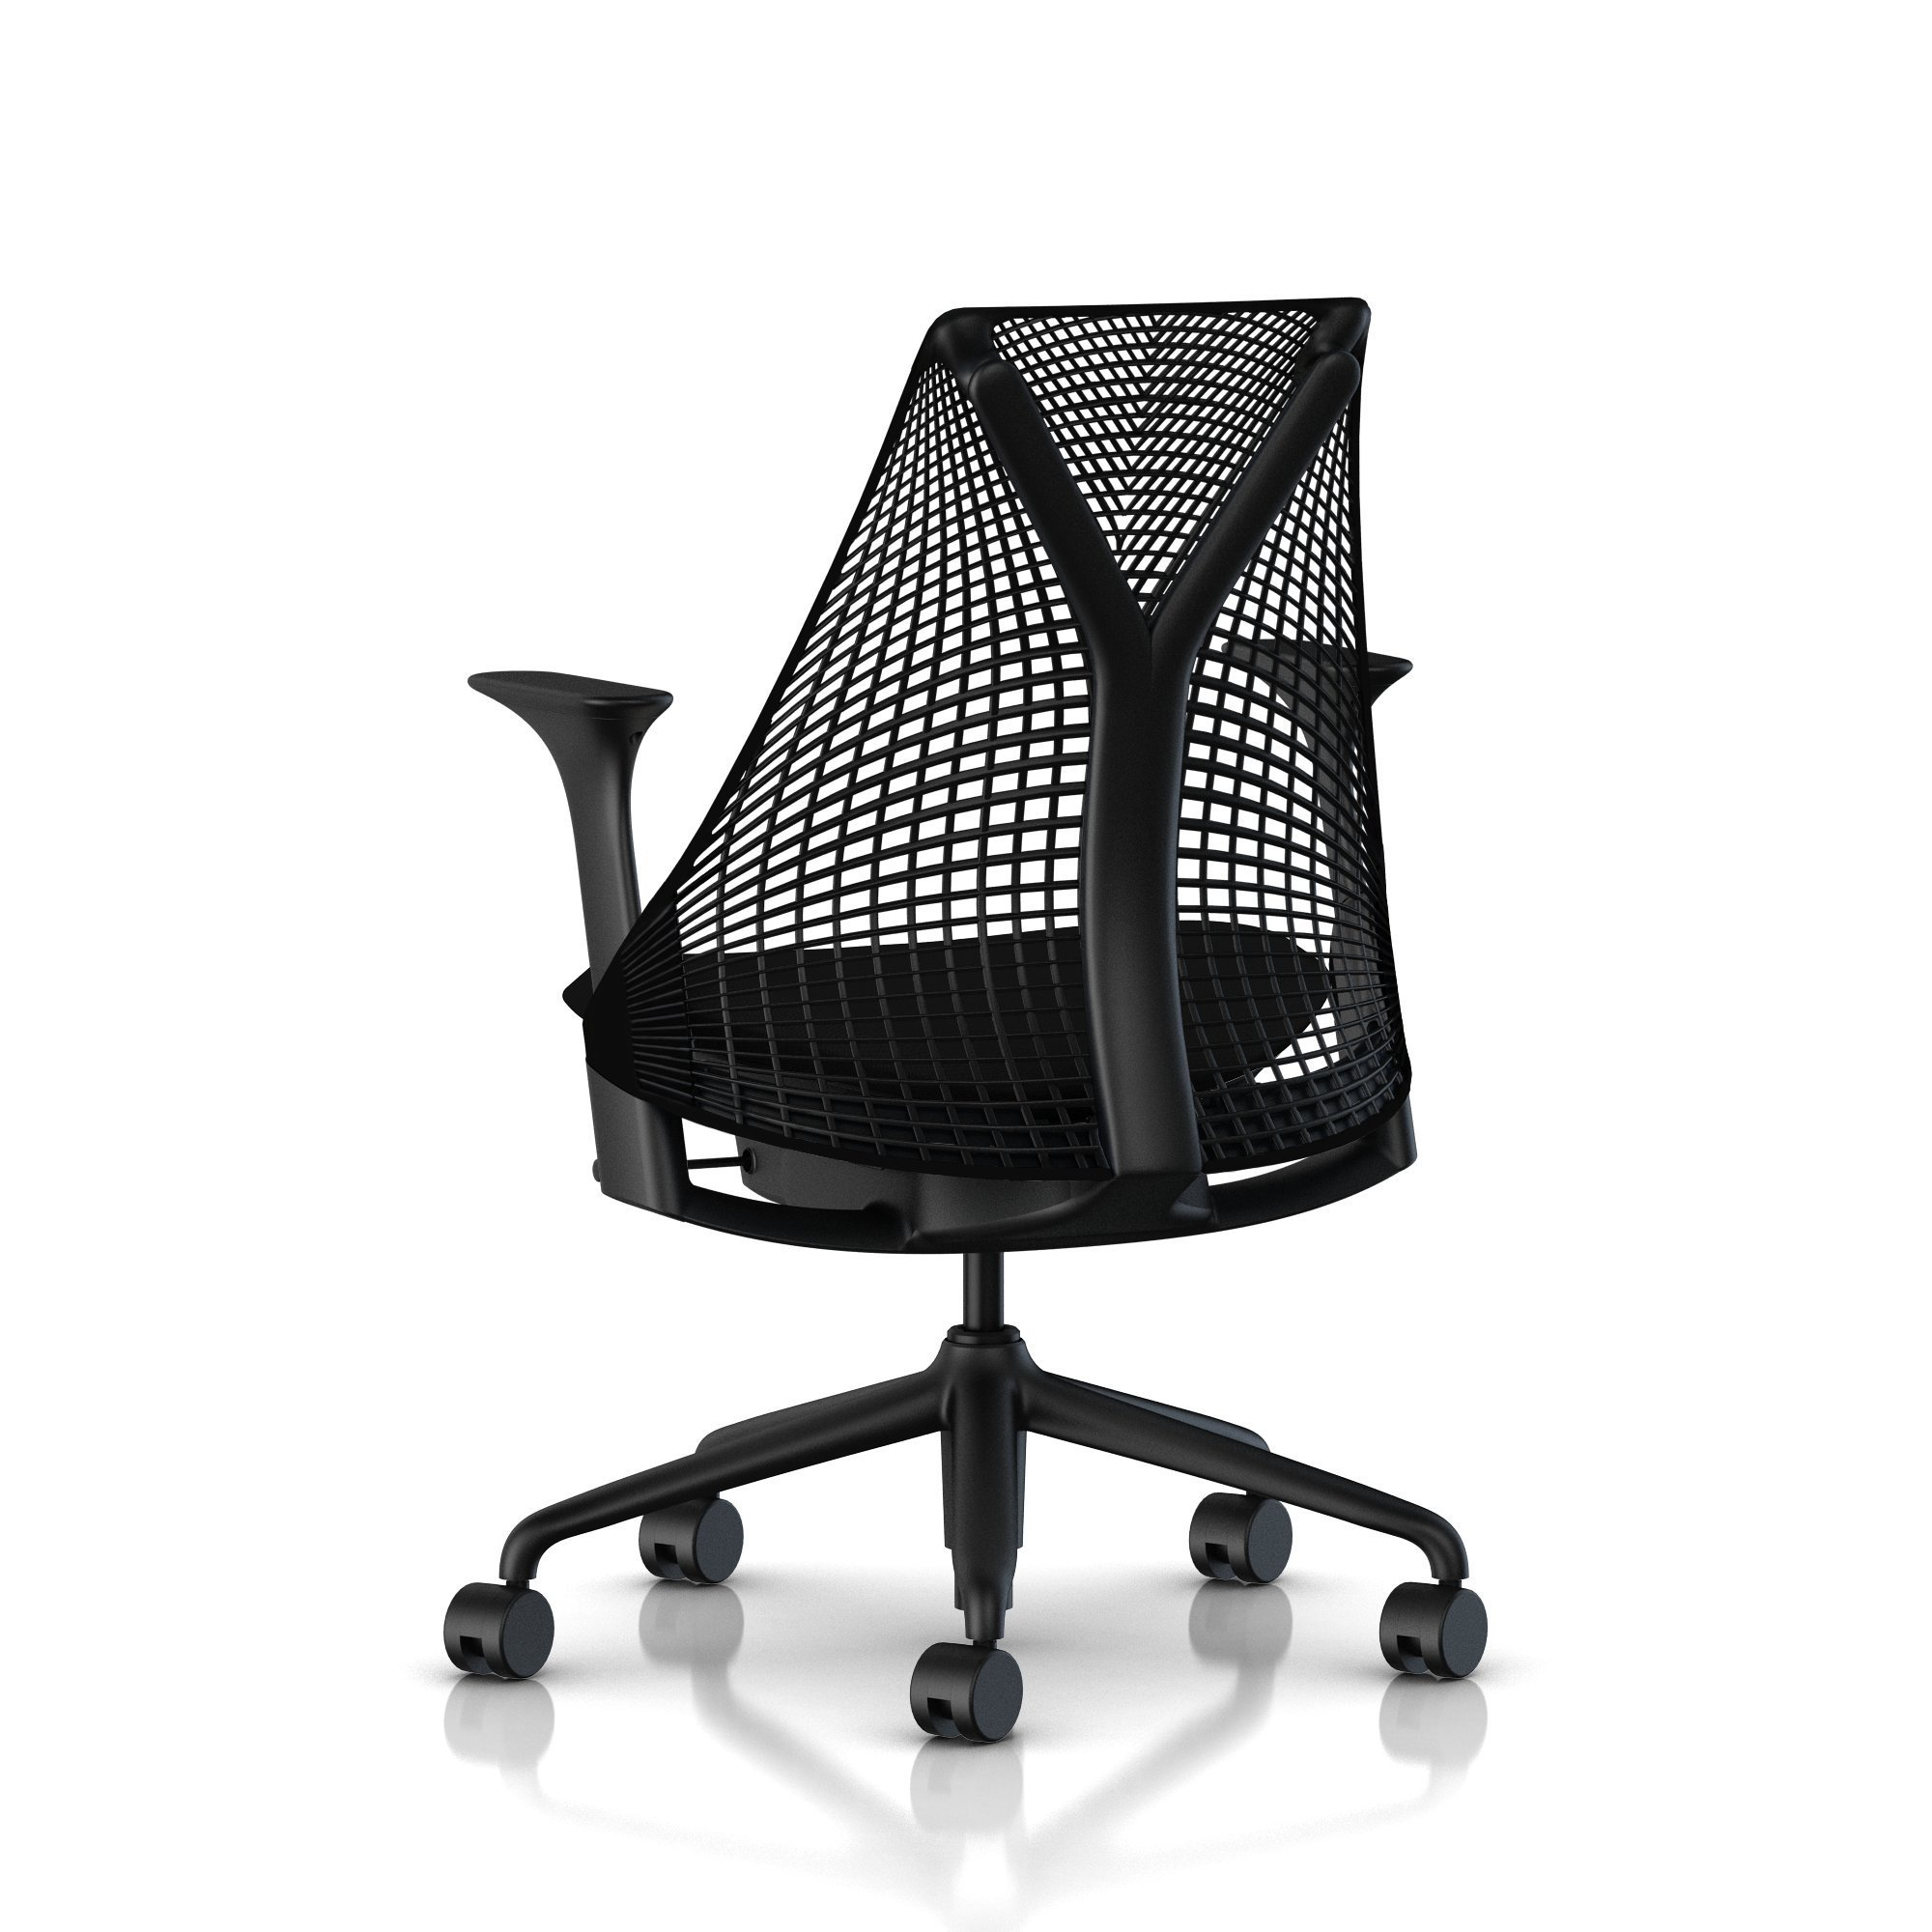 ergonomic chair reviews reddit padded folding chairs office best in usa